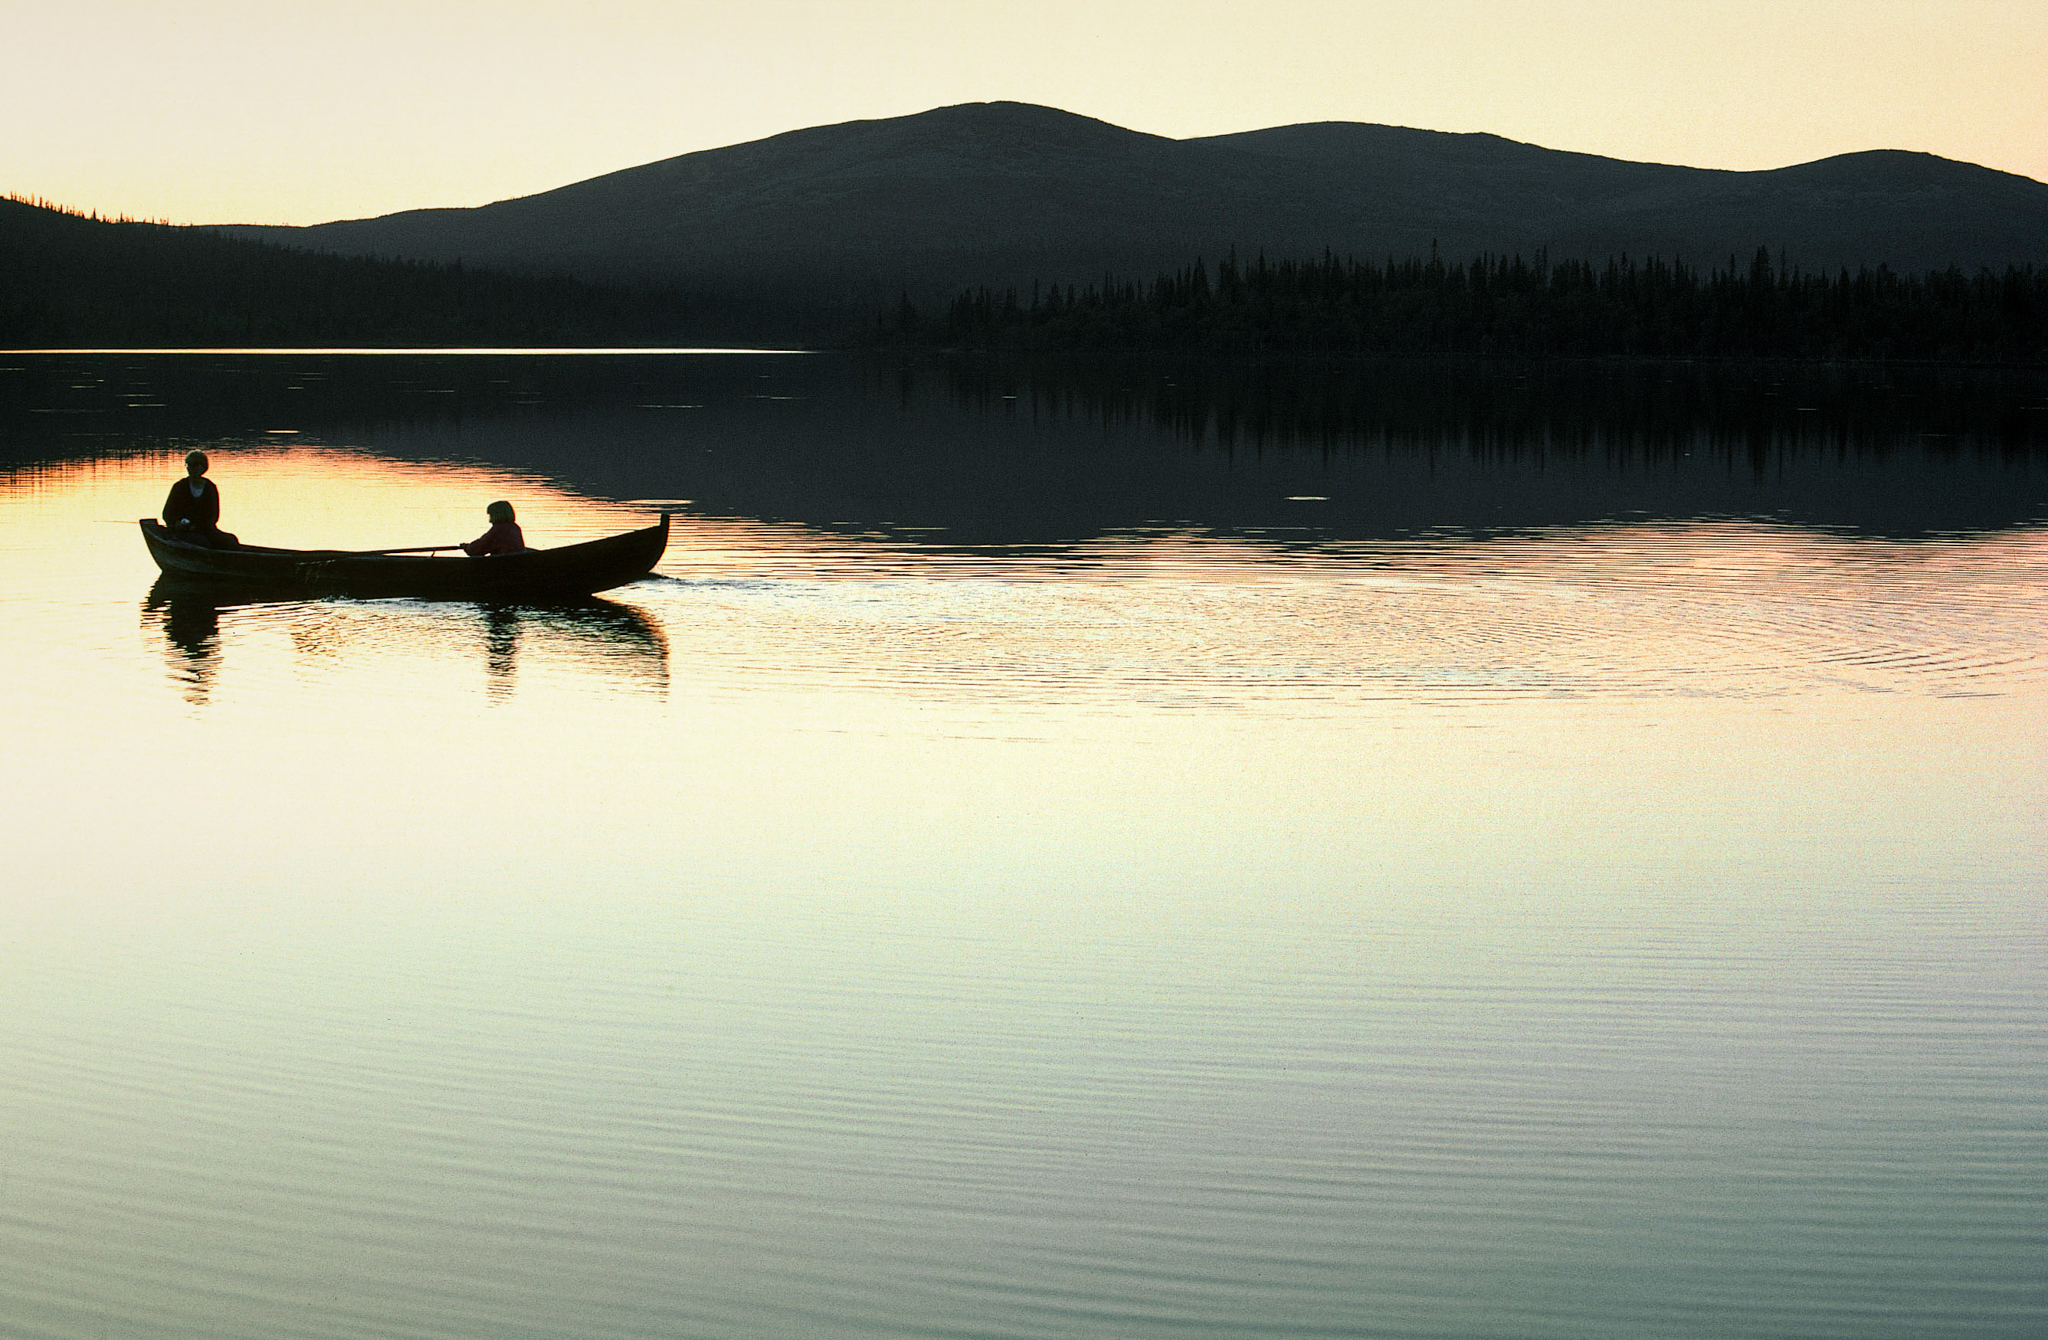 two people paddling in kanu on a lake in evening